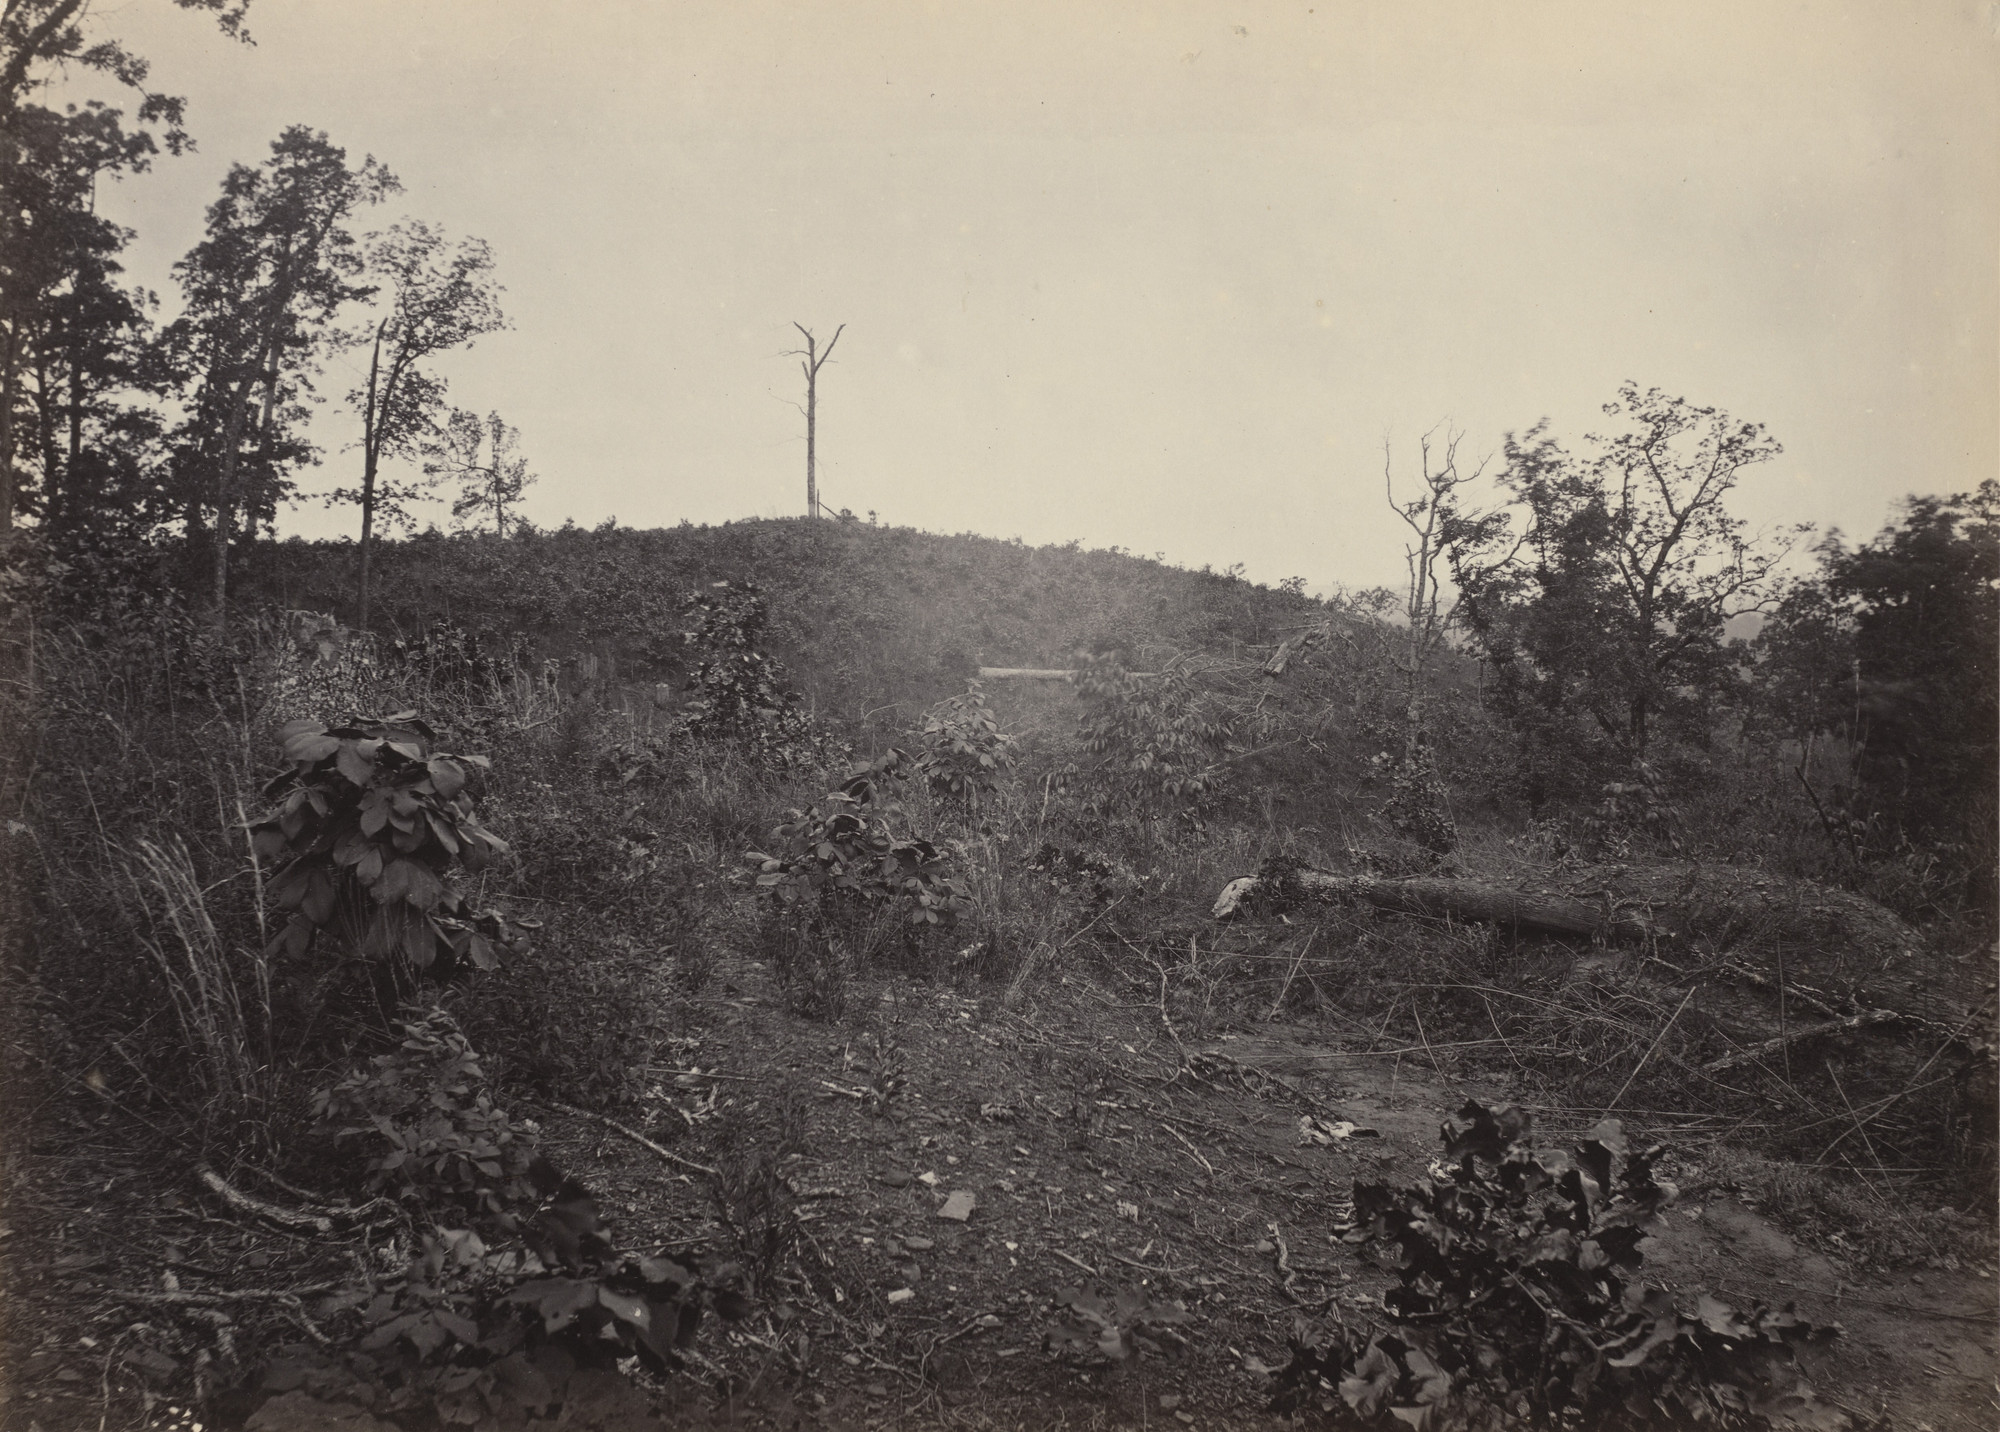 George Barnard. Pine Mountain from the album Photographic Views of Sherman's Campaign. 1864-65